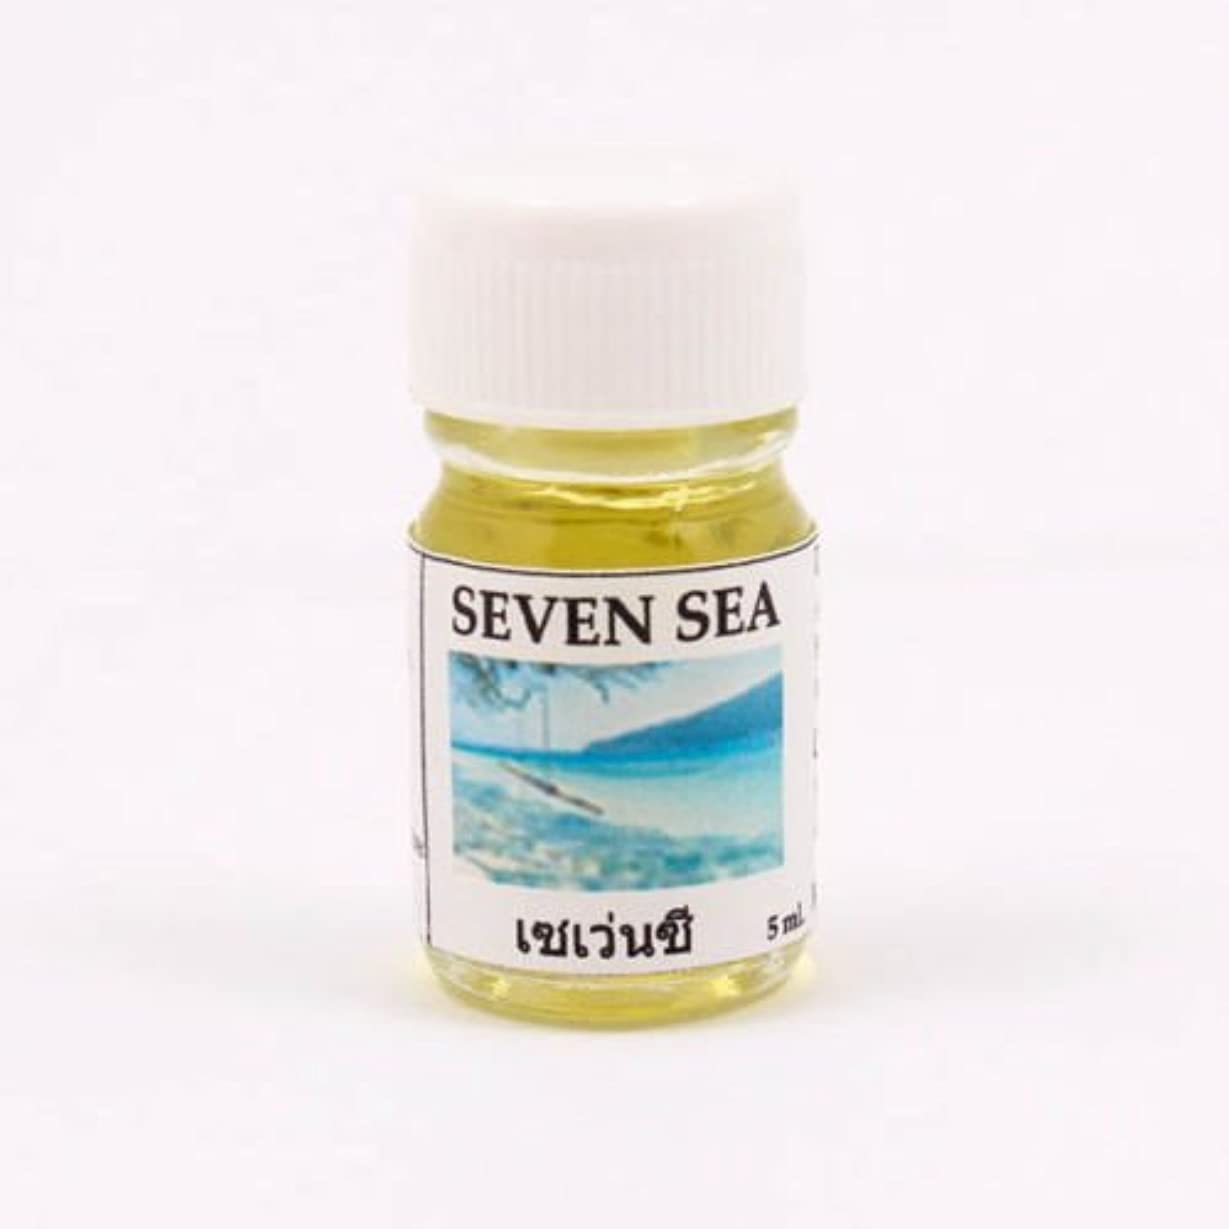 努力する崩壊特異性6X Seven Sea Aroma Fragrance Essential Oil 5ML. cc Diffuser Burner Therapy